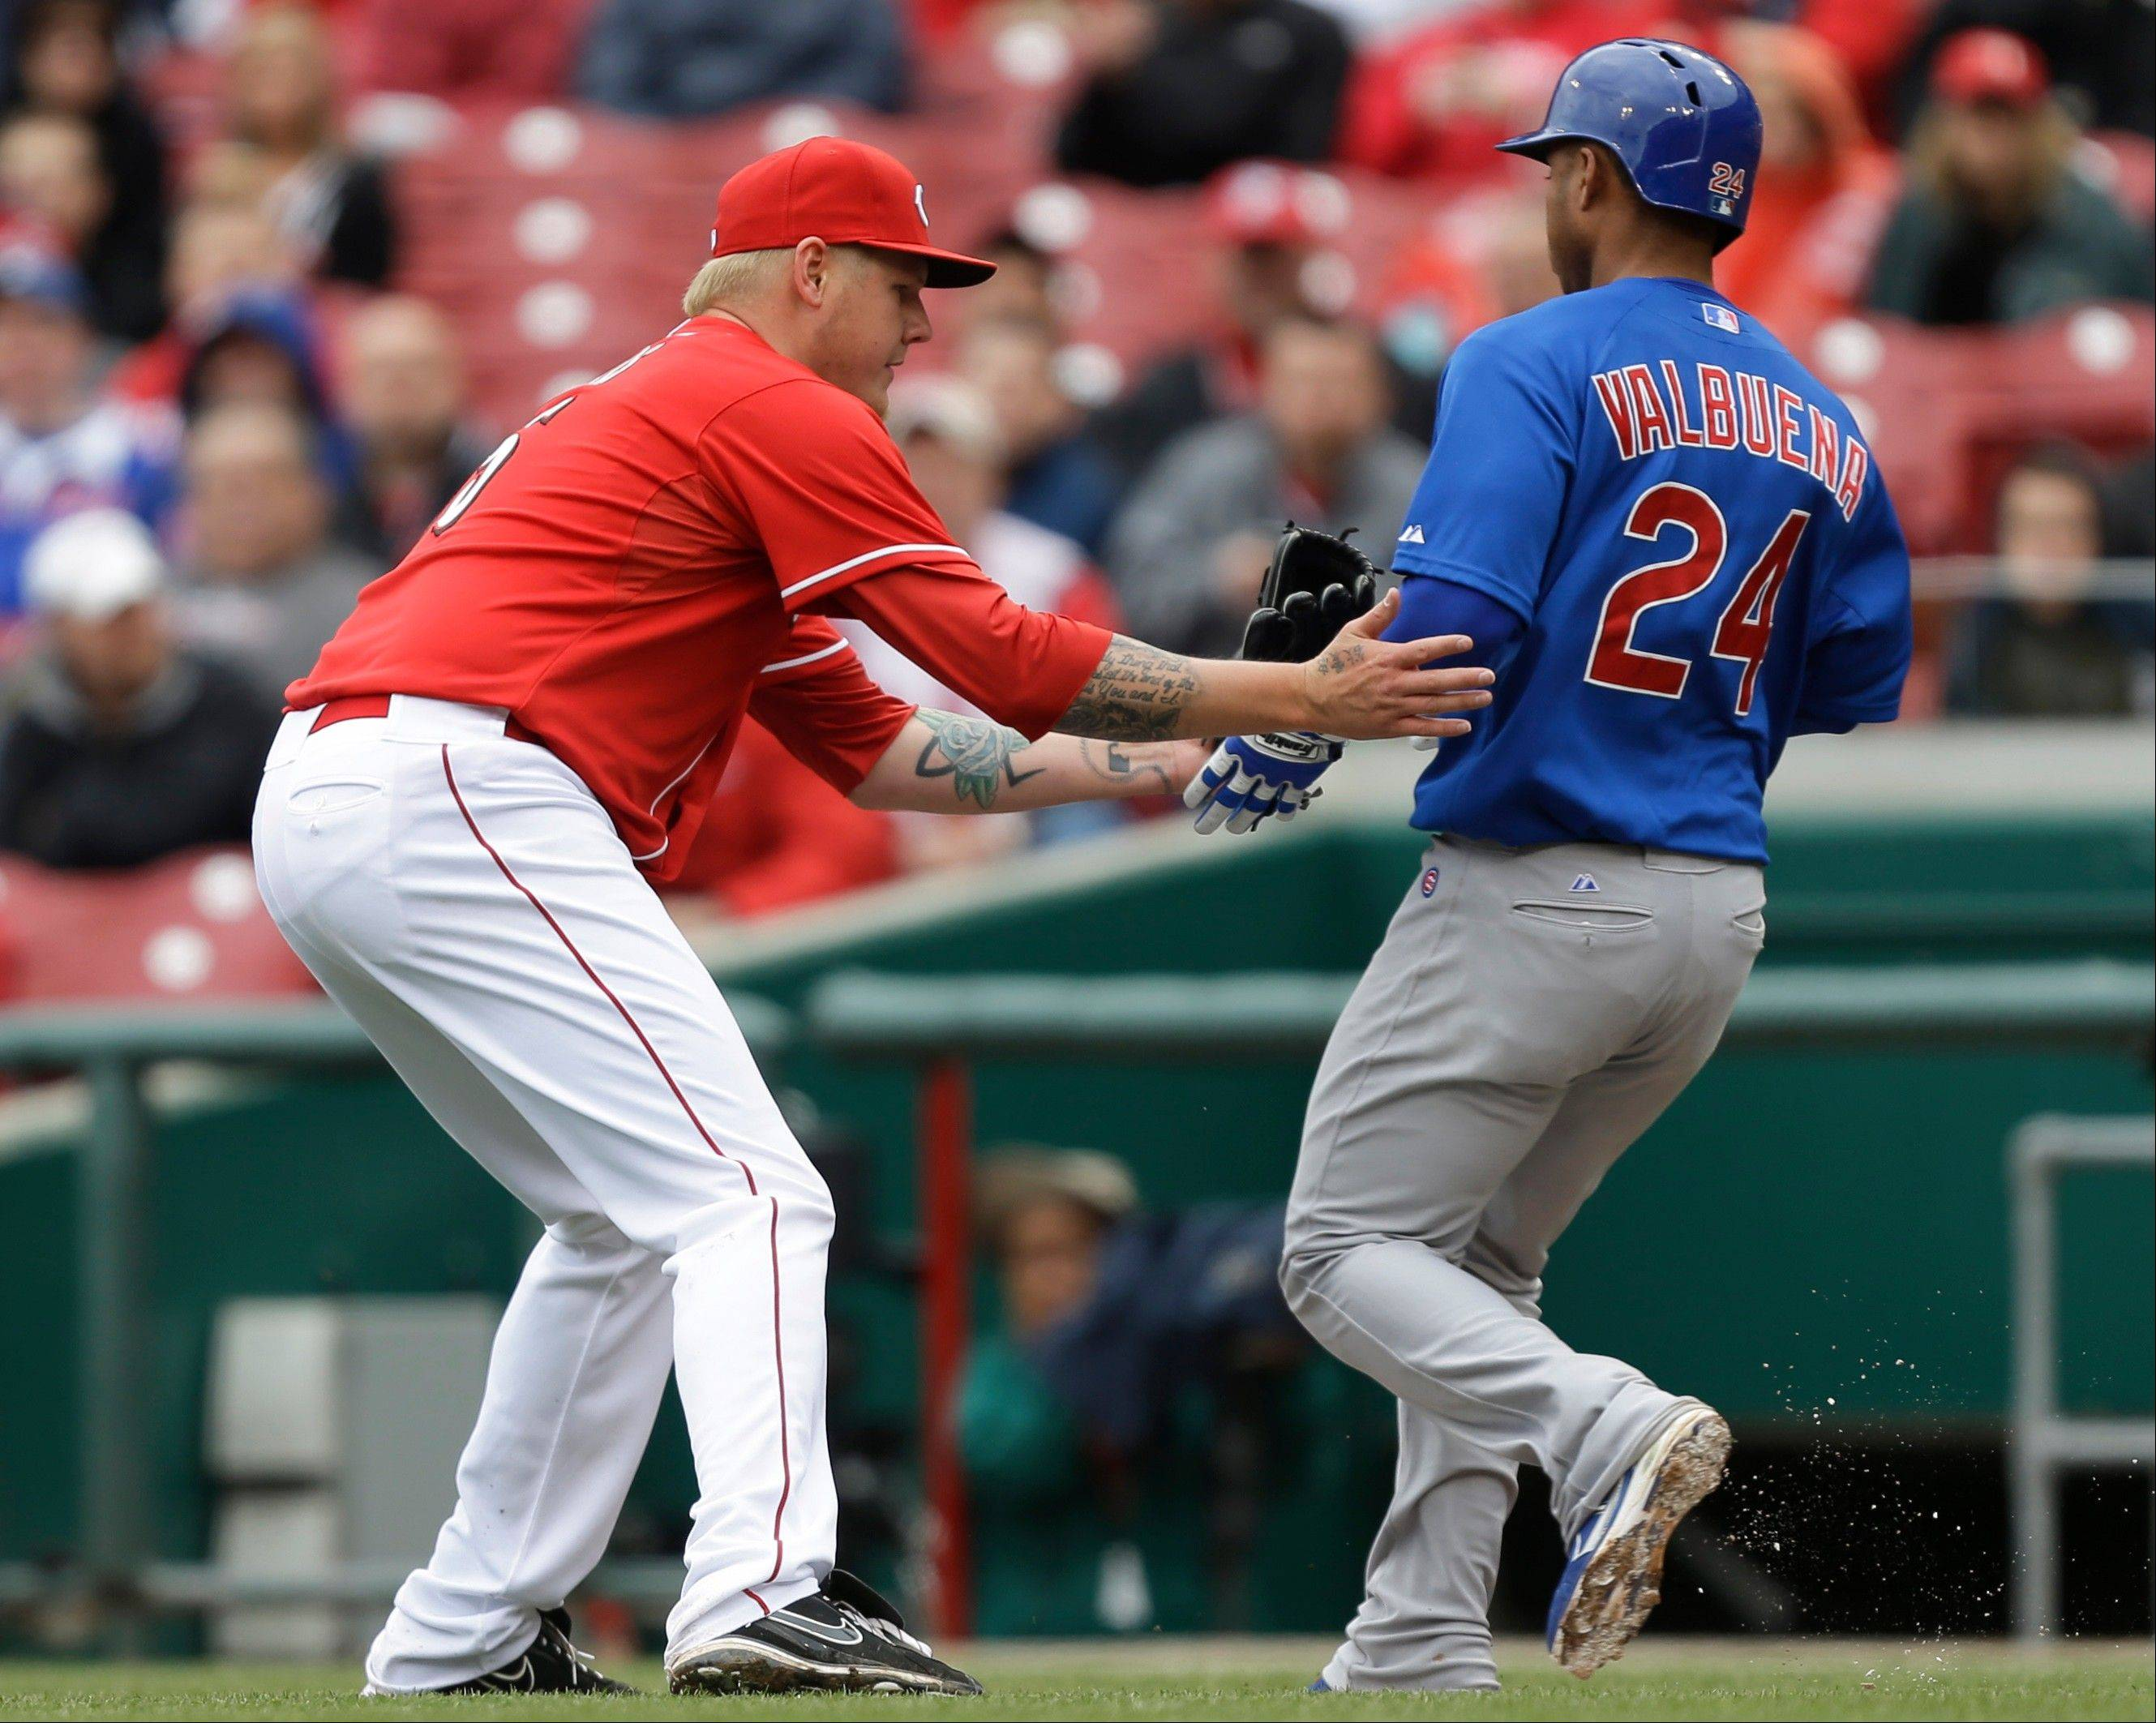 Cincinnati Reds starting pitcher Mat Latos tags out Chicago Cubs' Luis Valbuena (24) after Latos fielded a ground ball Wednesday in Cincinnati. The Cubs lost to the Reds 1-0.